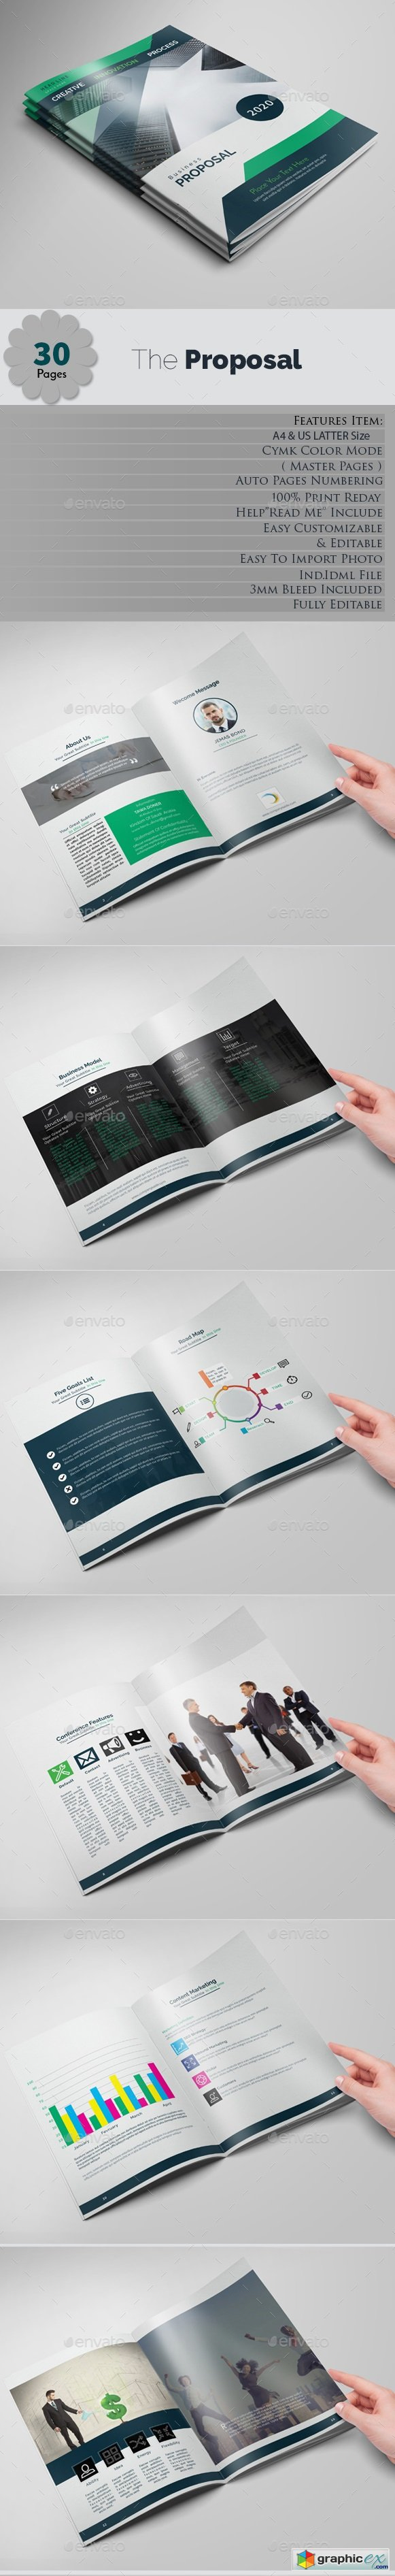 100 The Proposal Download Free 100 Project Memo Template